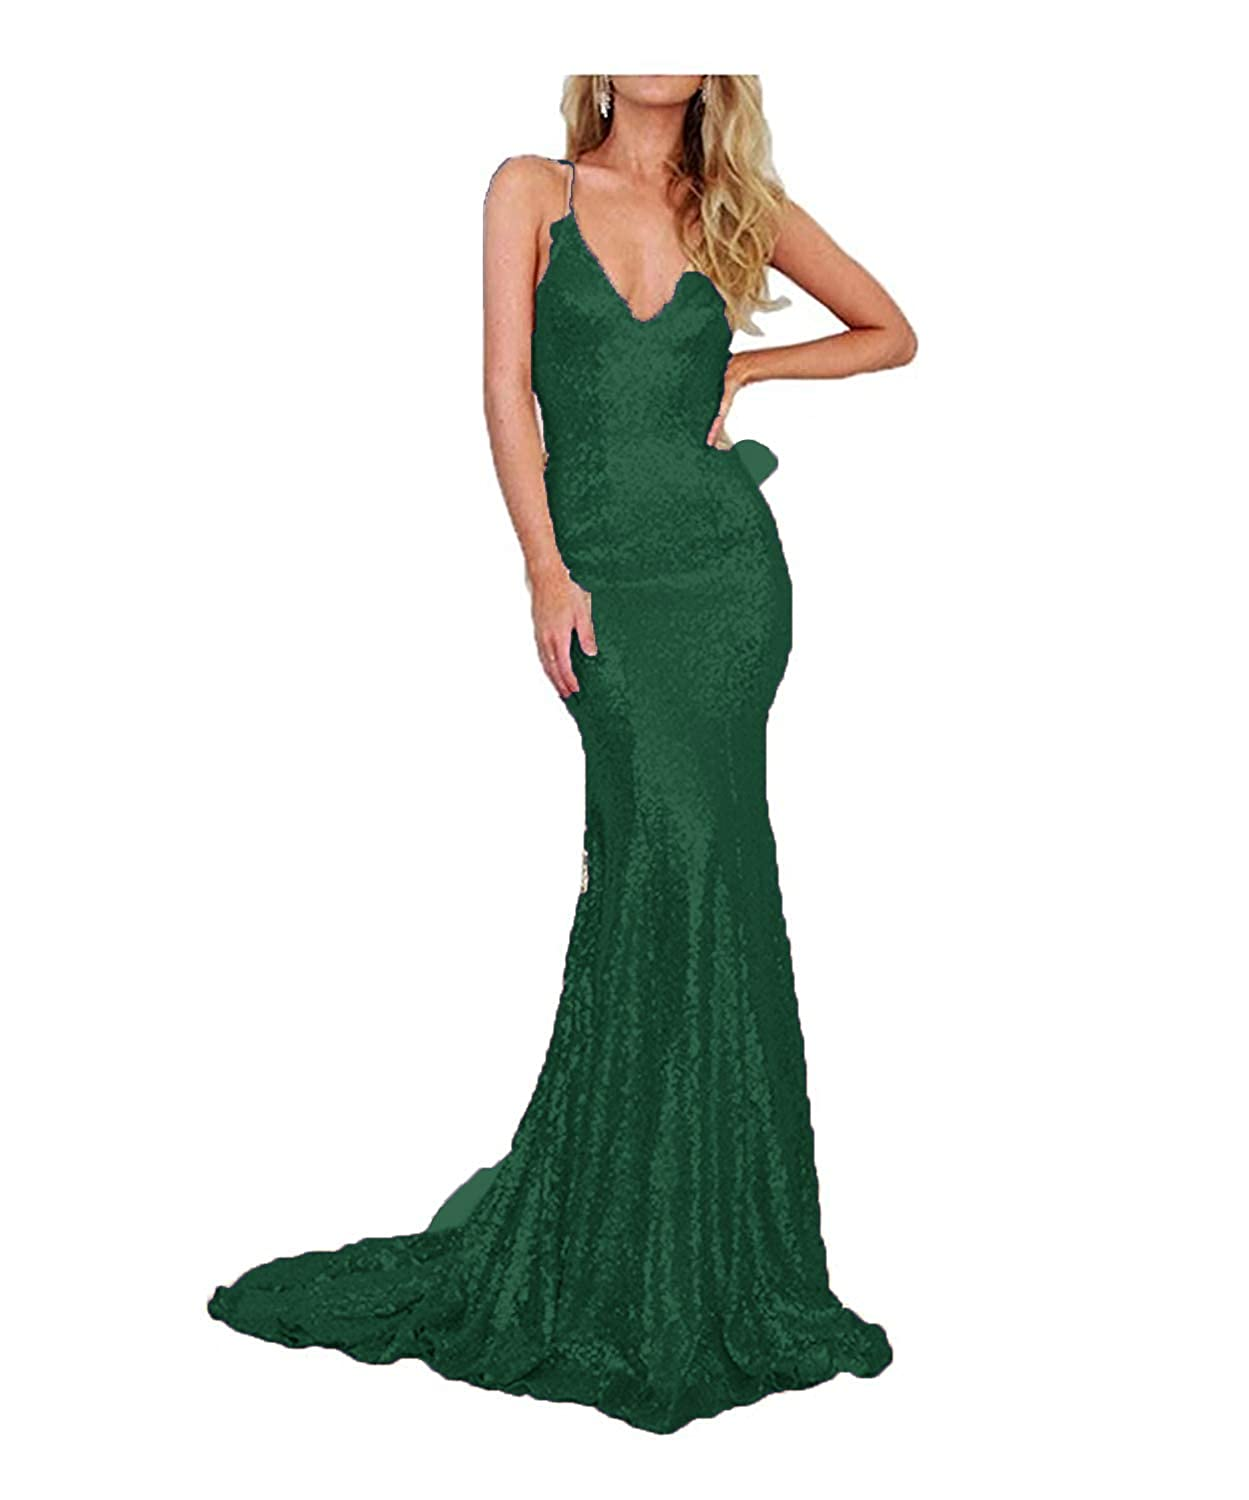 Dark Green liangjinsmkj gold Sequin Mermaid Prom Dresses V Neck Evening Gown Long Backless